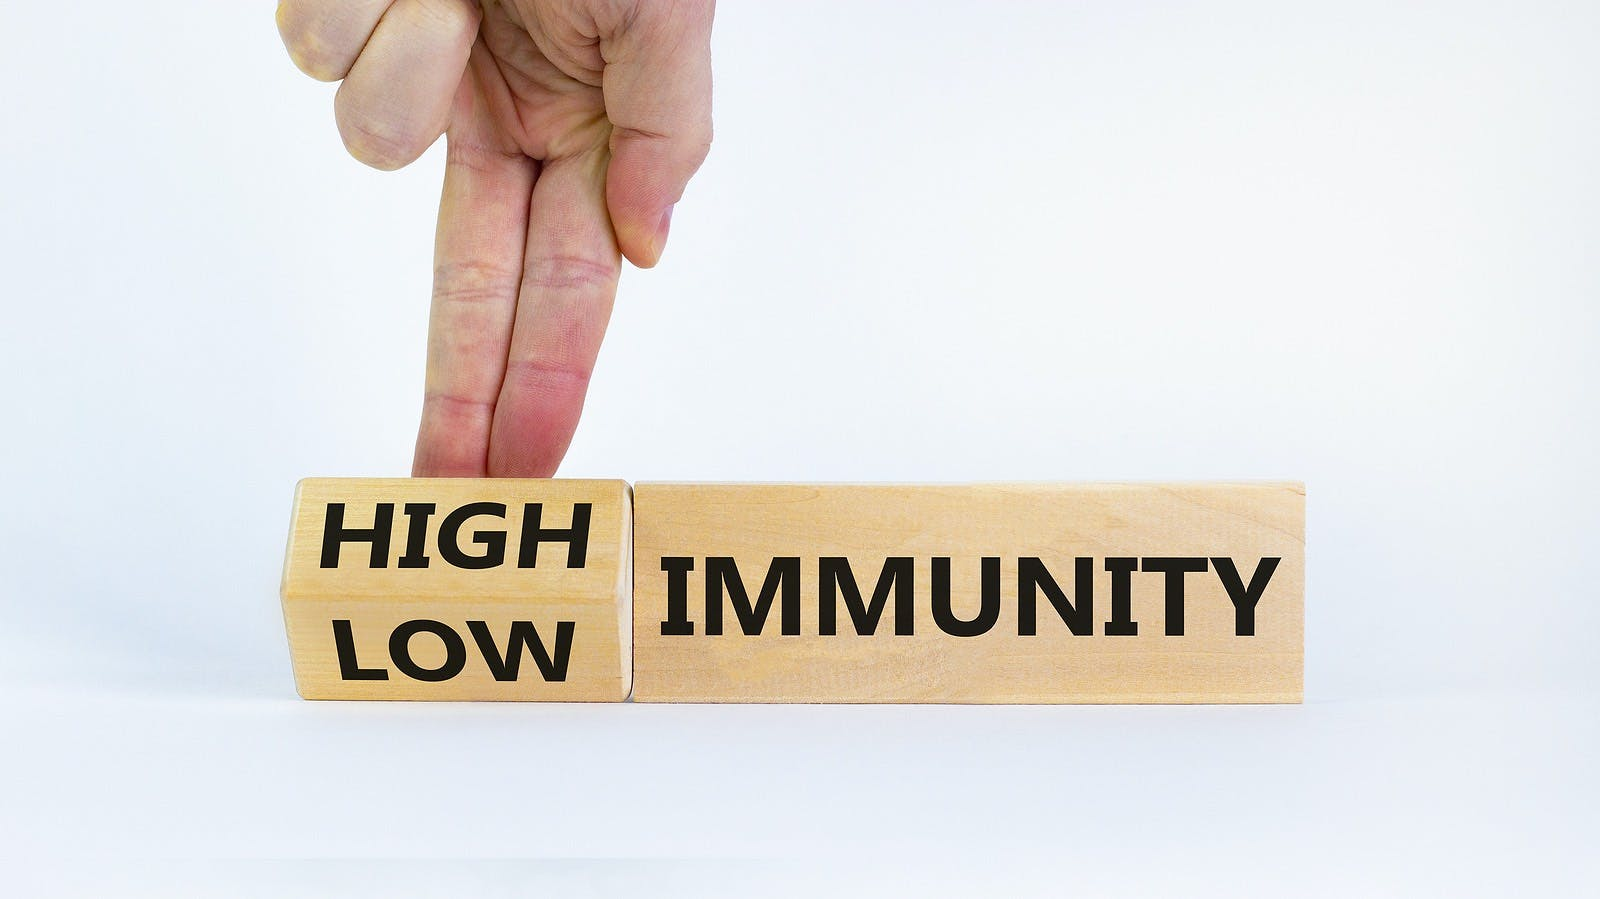 High or low immunity symbol. Doctor turns a block and changes words 'low immunity' to 'high immunity'. Beautiful white background. Medical, high or low immunity concept. Copy space.